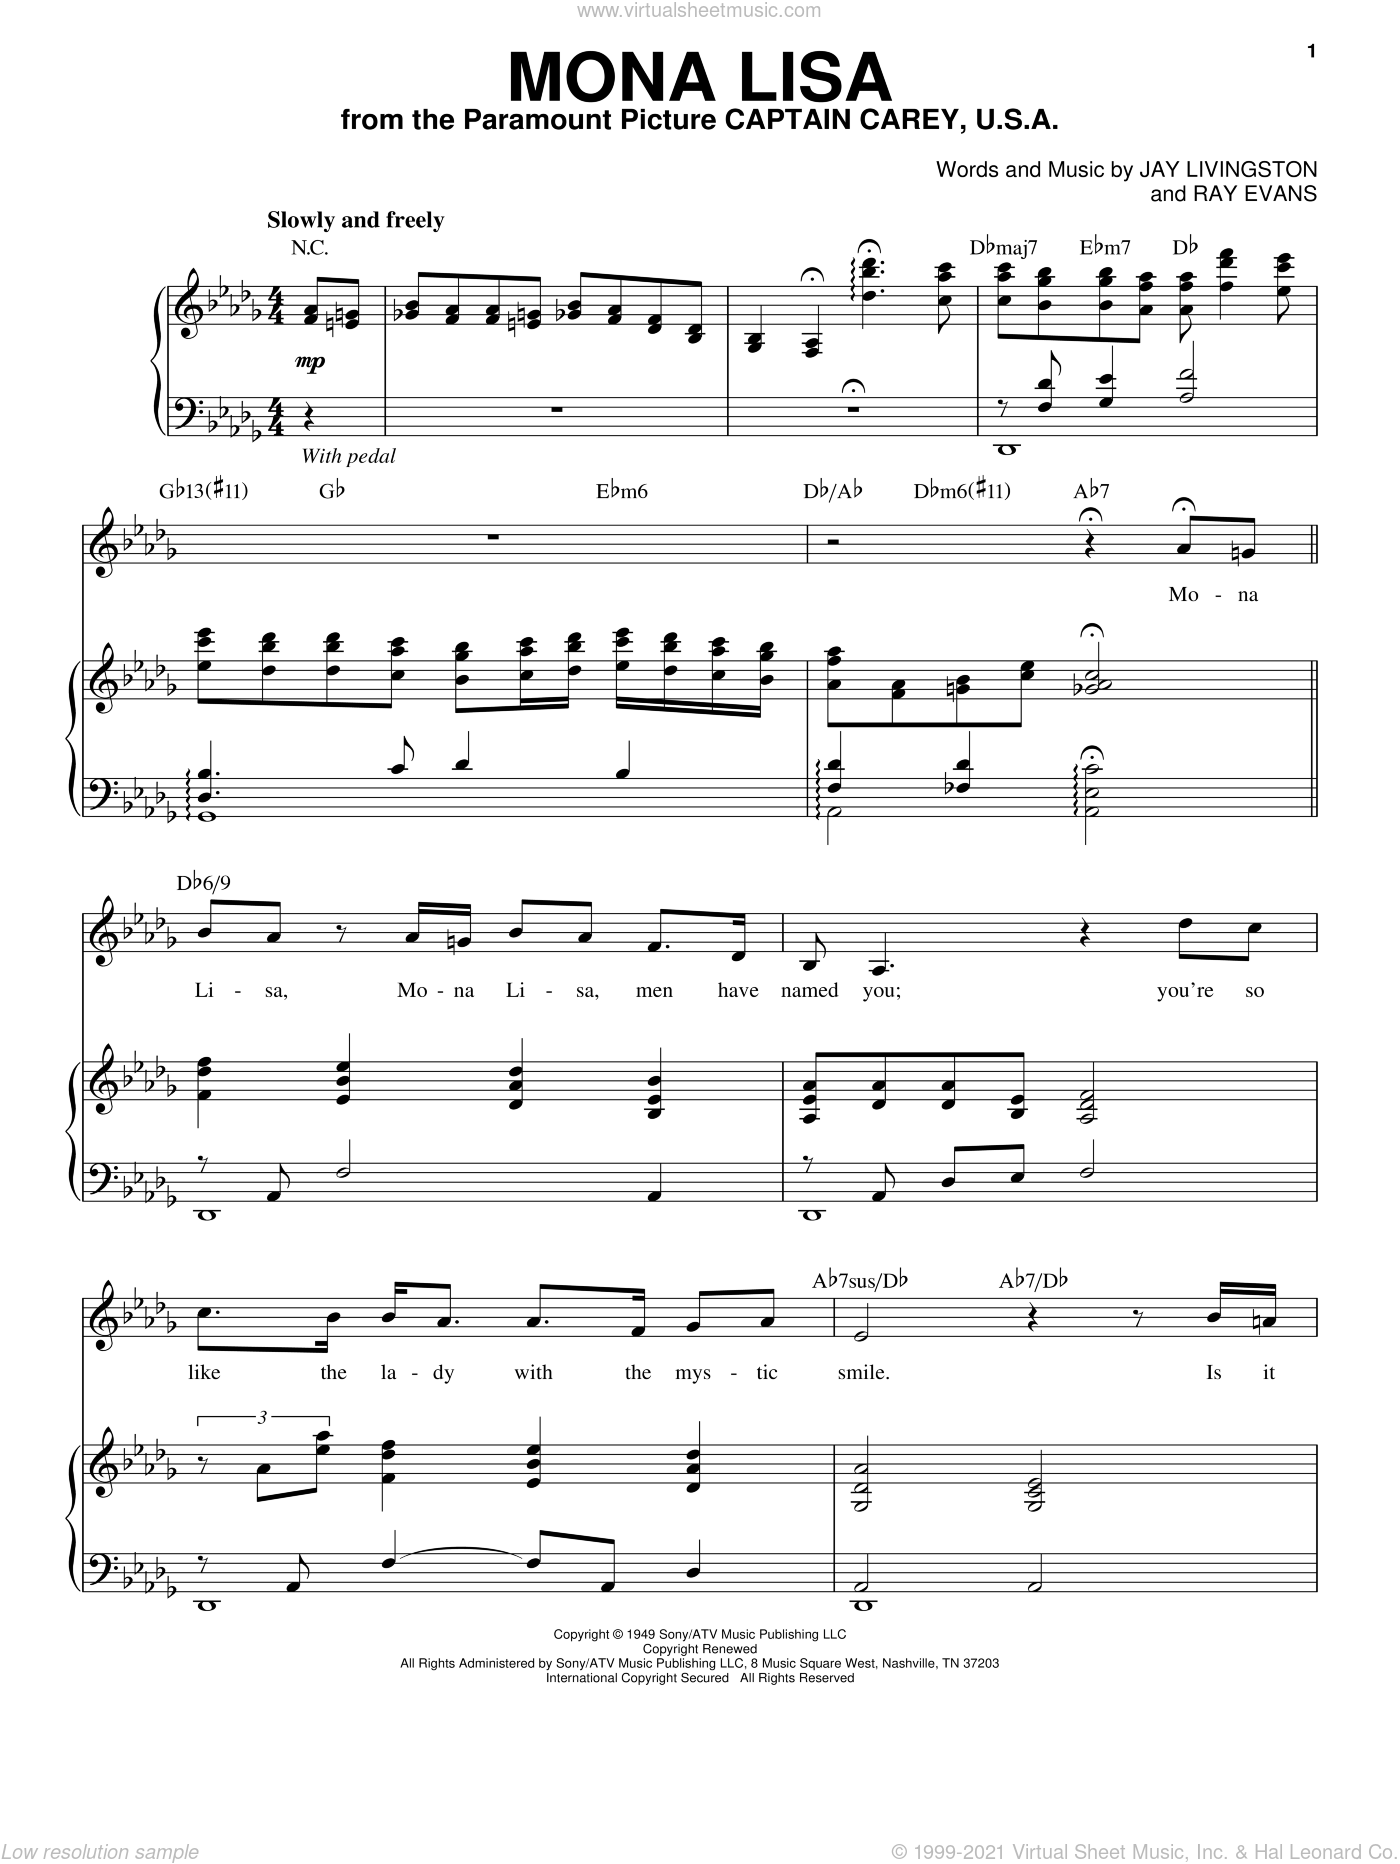 Mona Lisa sheet music for voice and piano by Nat King Cole, Jay Livingston and Ray Evans, intermediate skill level